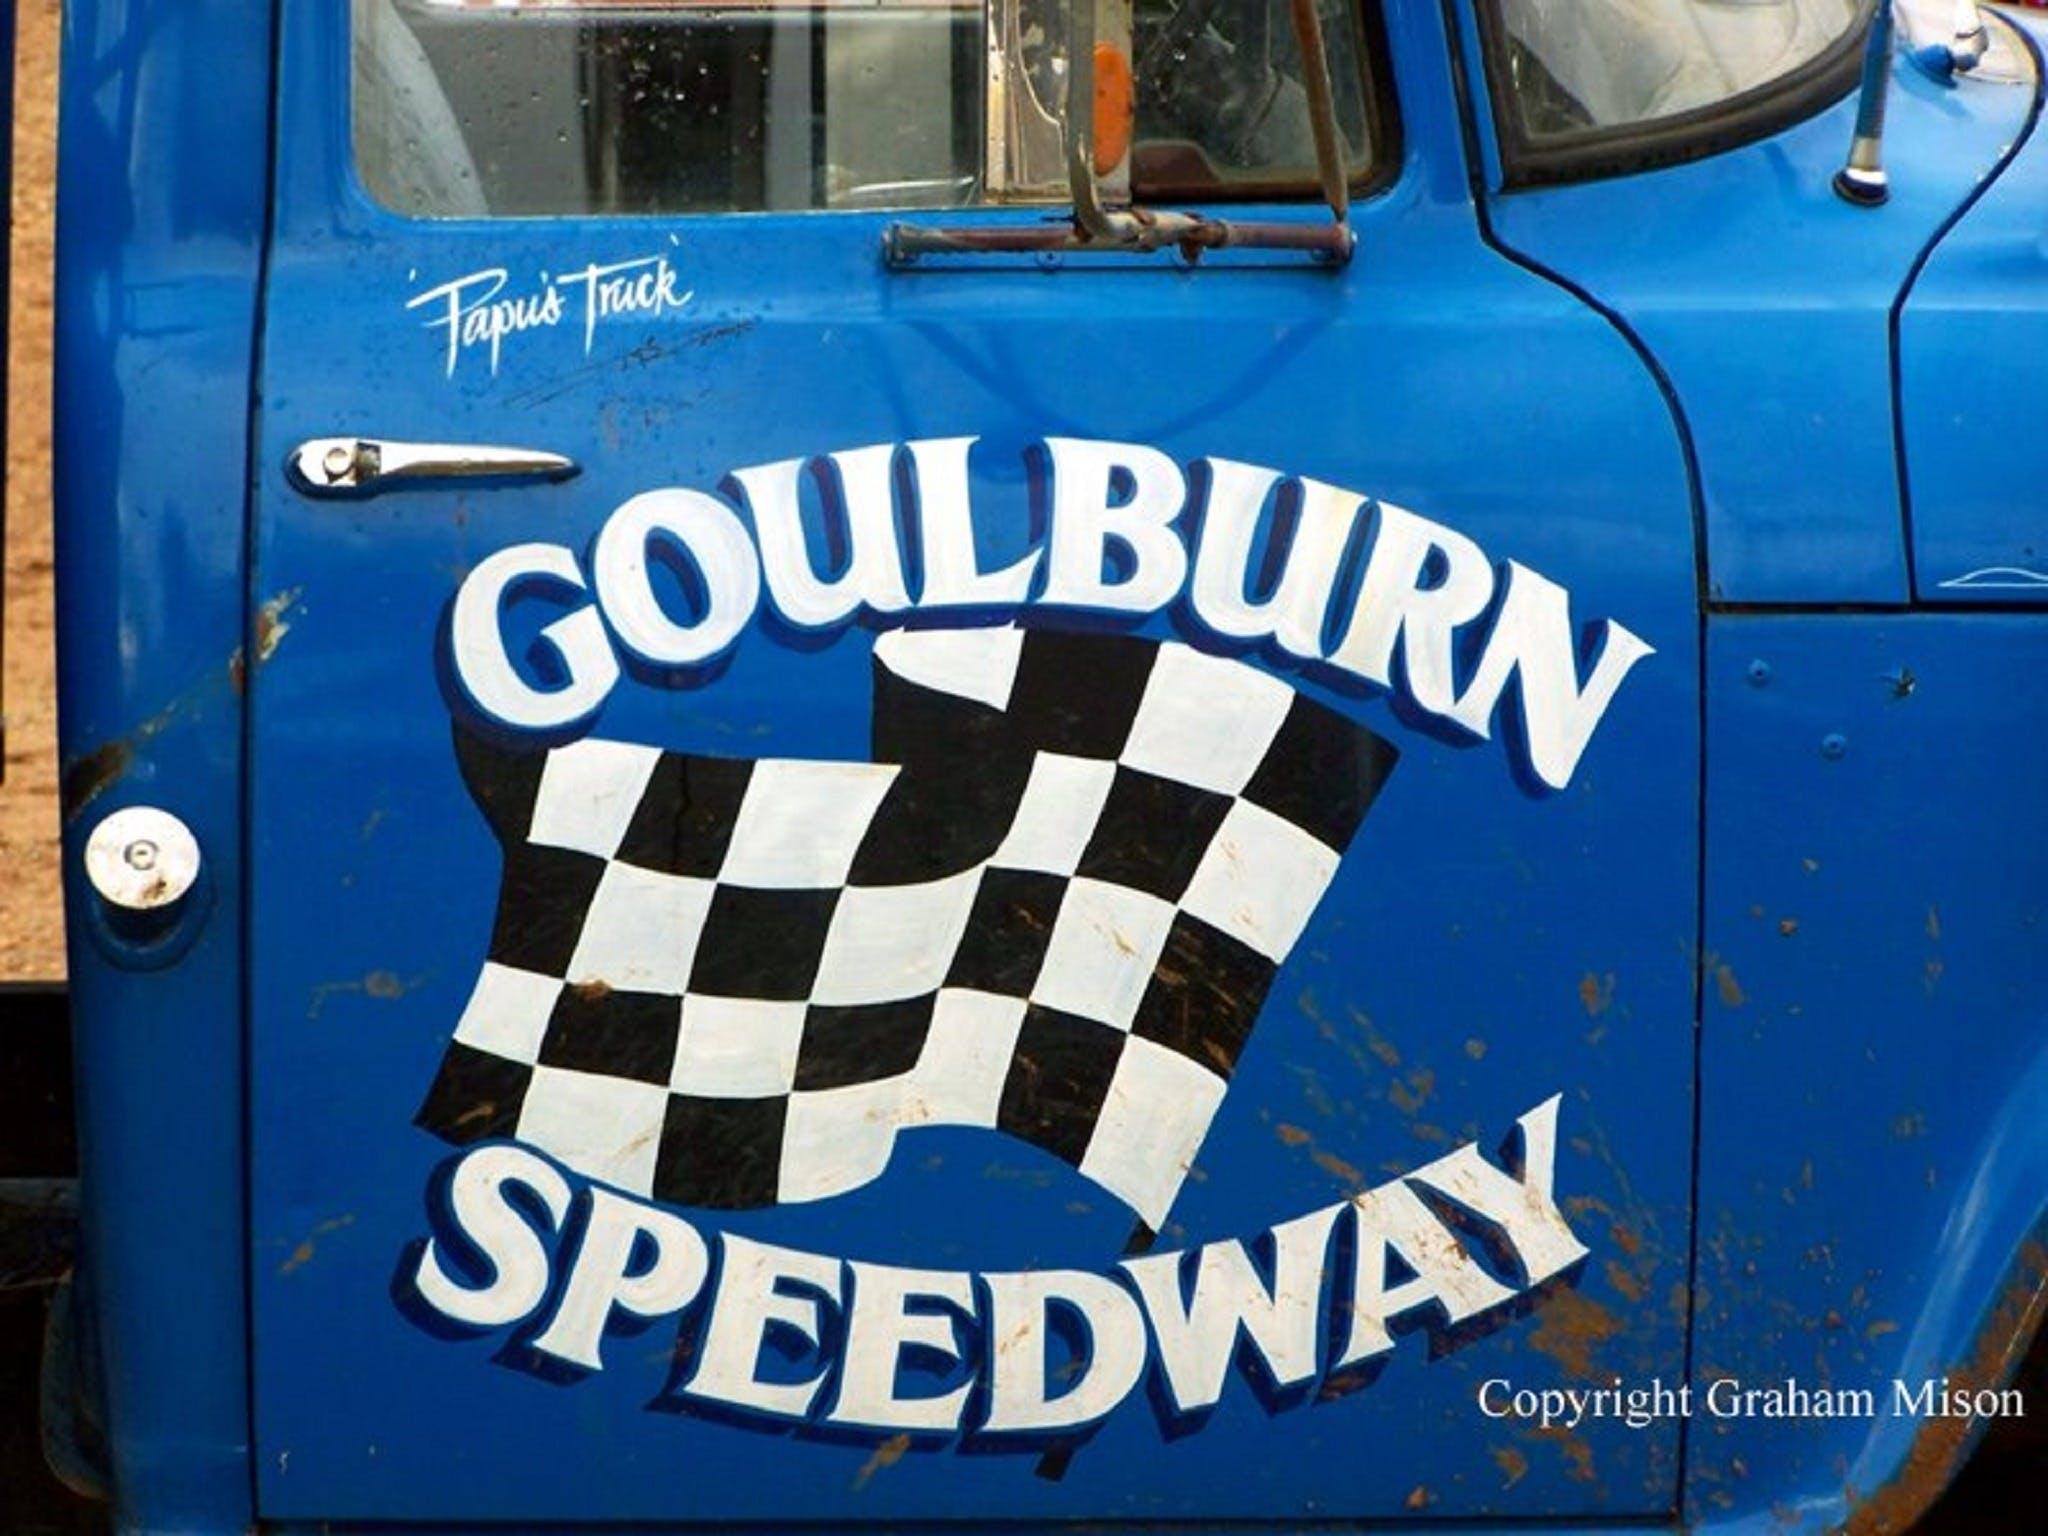 50 years of racing at Goulburn Speedway - Accommodation in Surfers Paradise